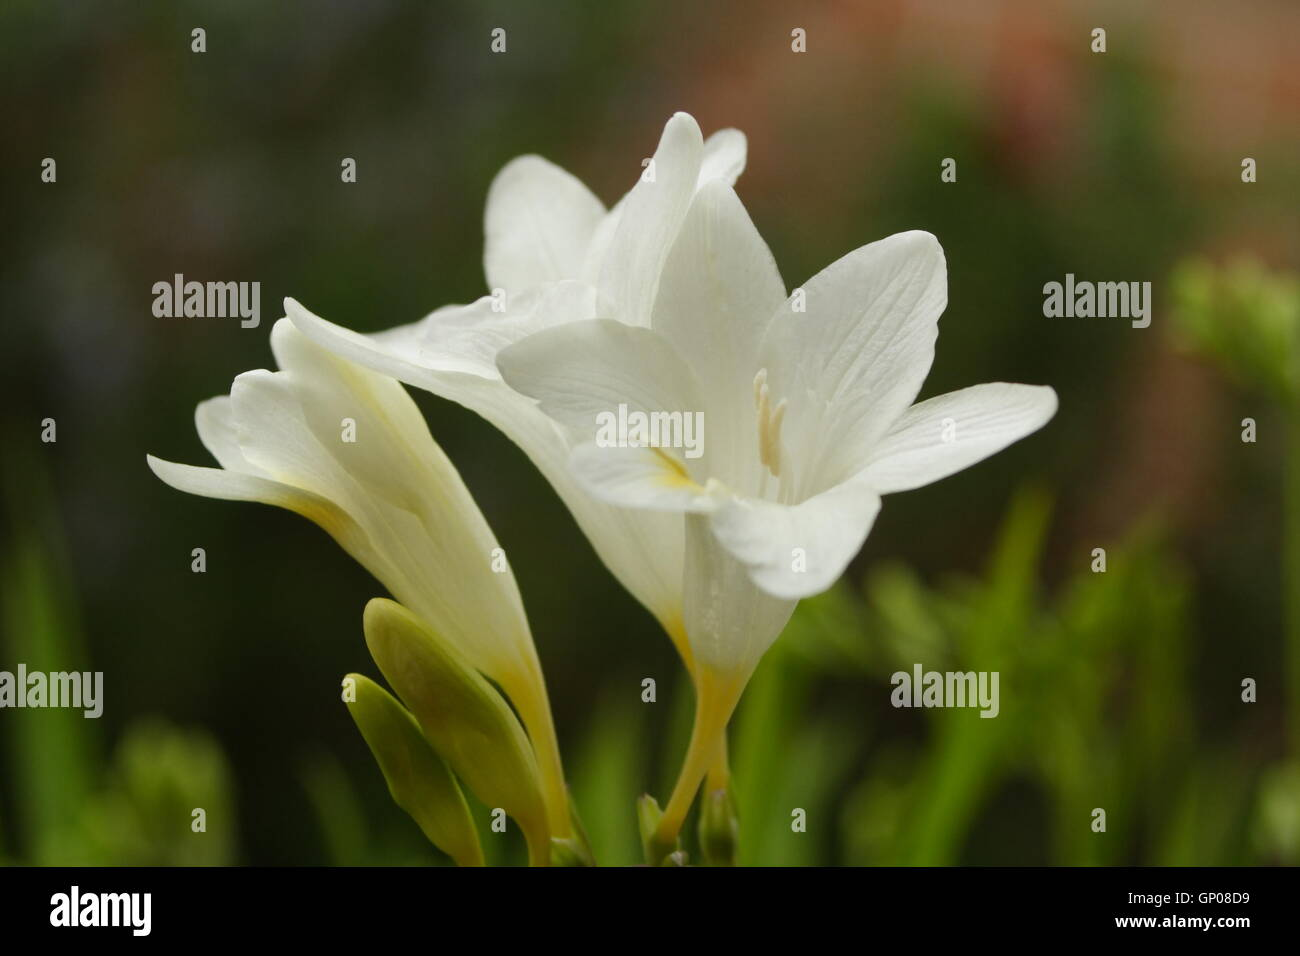 Bulb flowers in early spring stock photo 116791285 alamy bulb flowers in early spring mightylinksfo